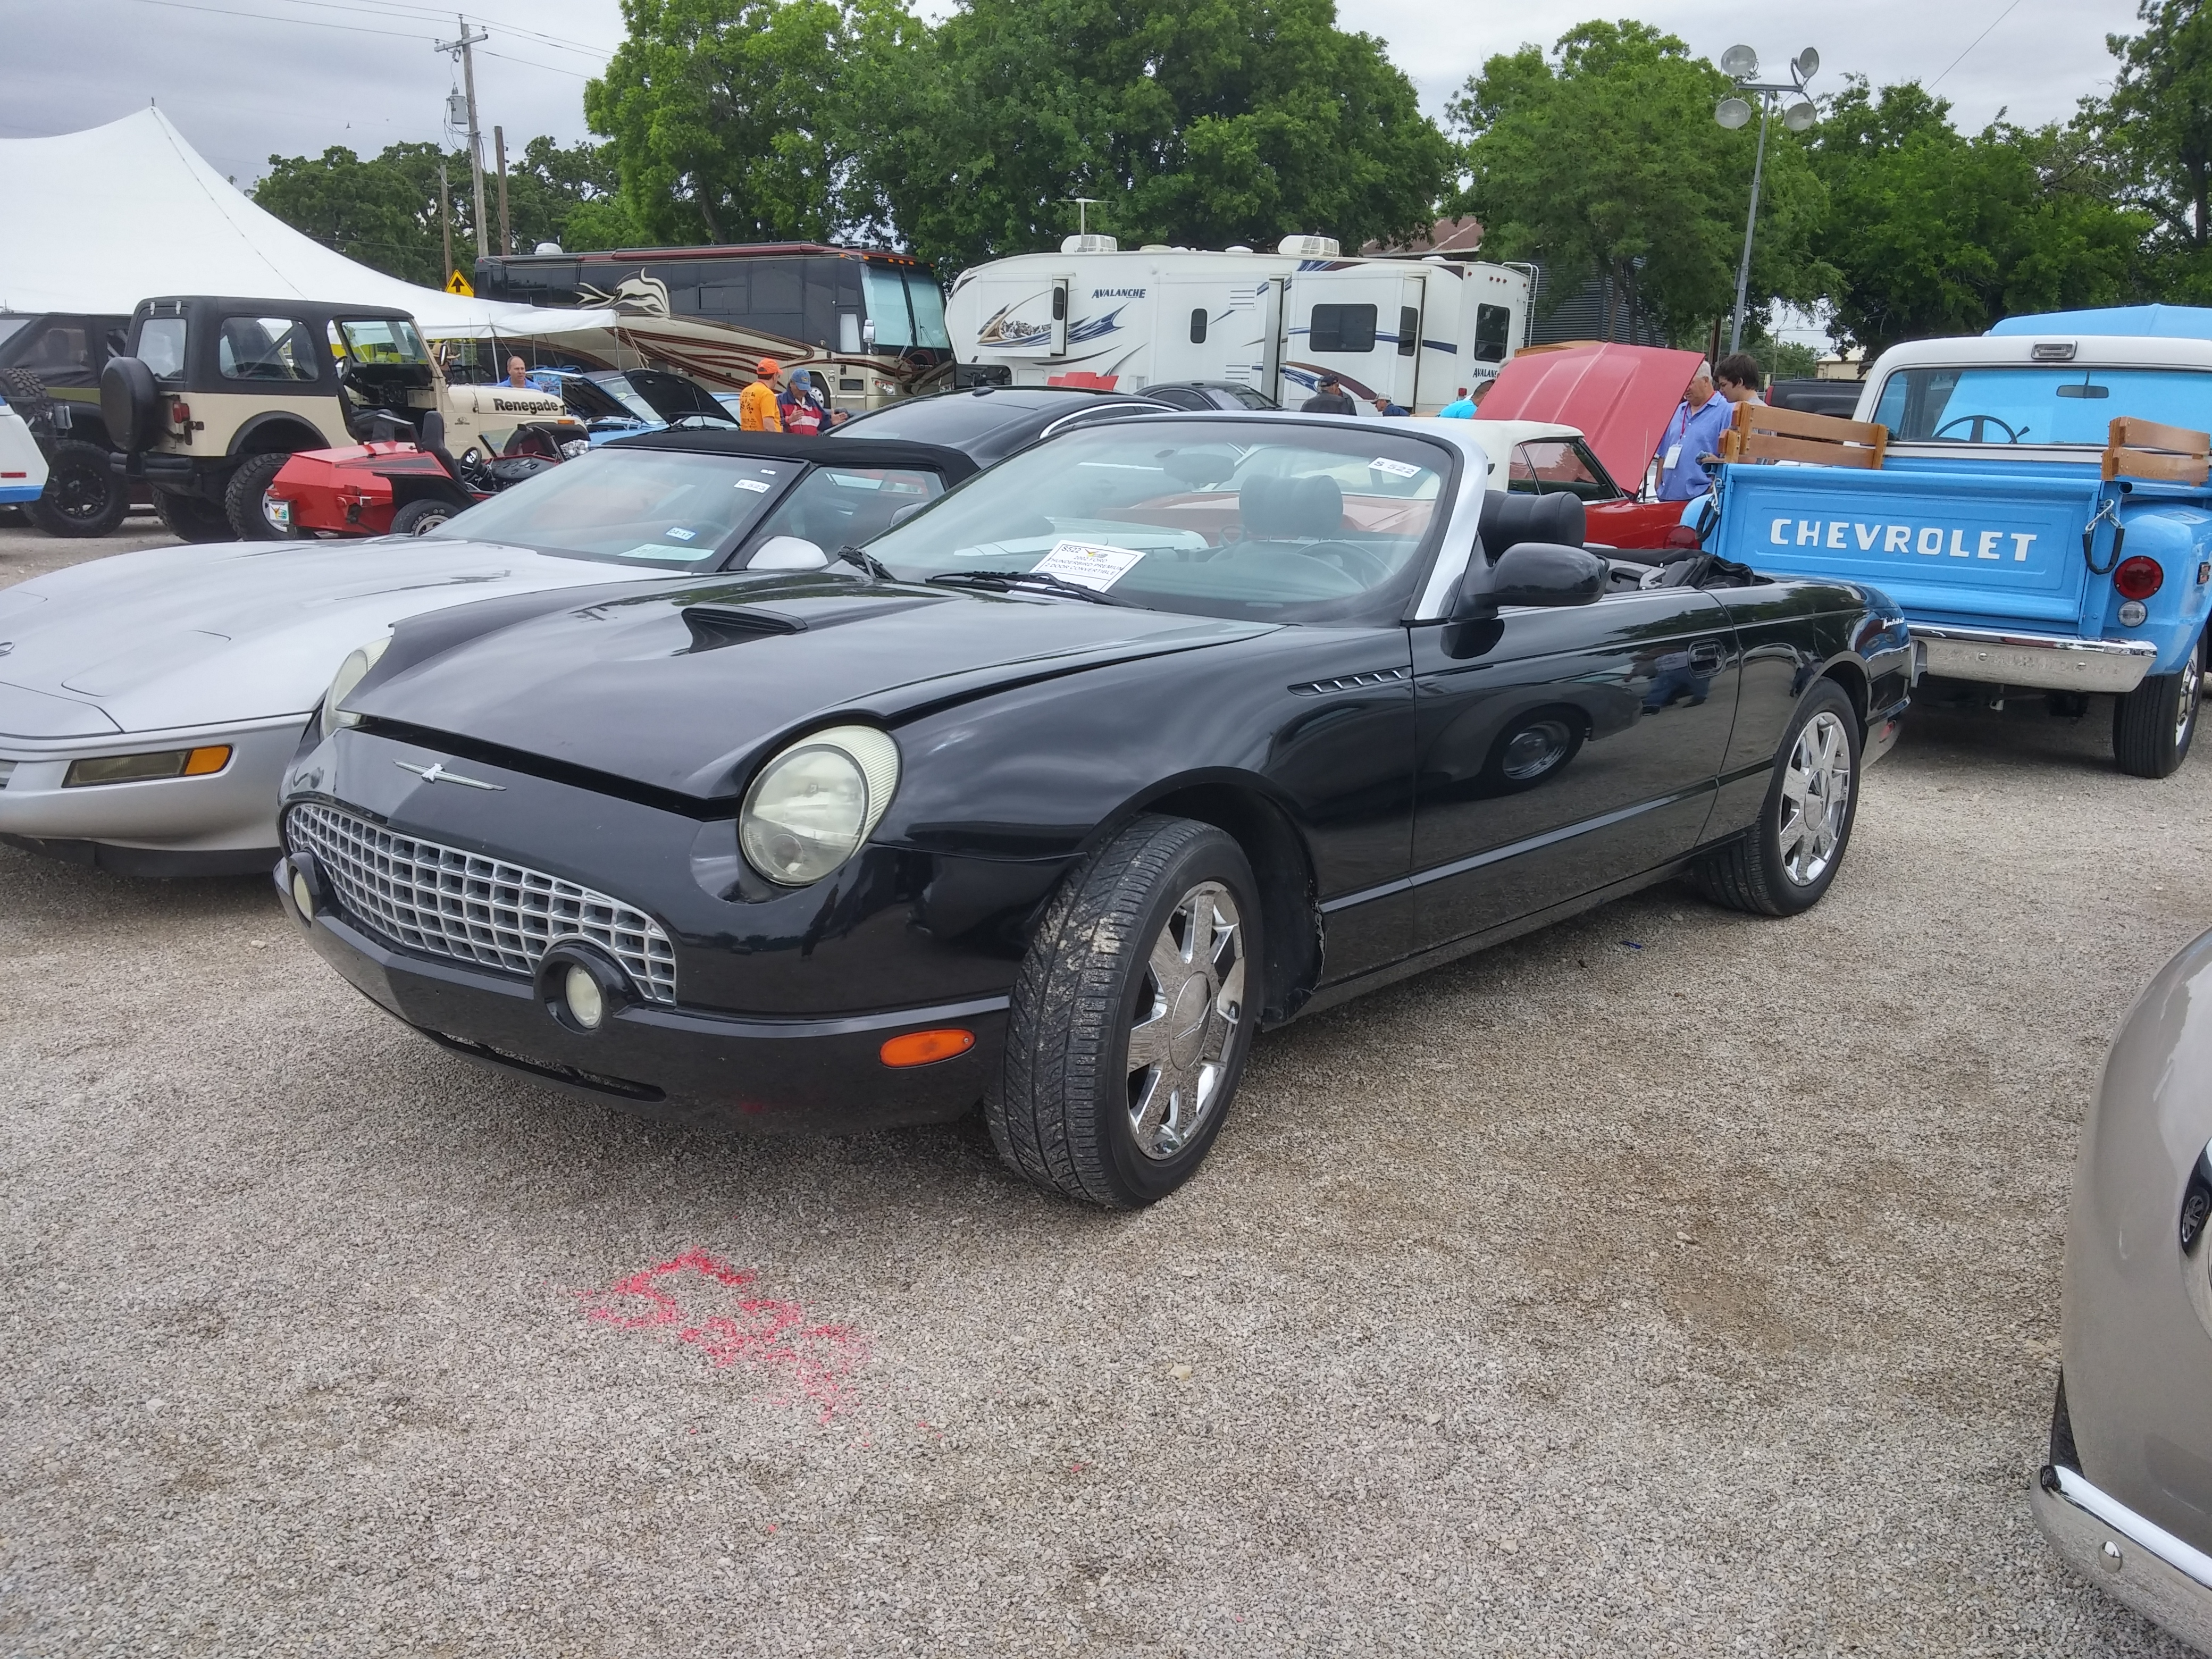 2002 ford thunderbird premium for sale at vicari auctions nocona tx 2016. Black Bedroom Furniture Sets. Home Design Ideas